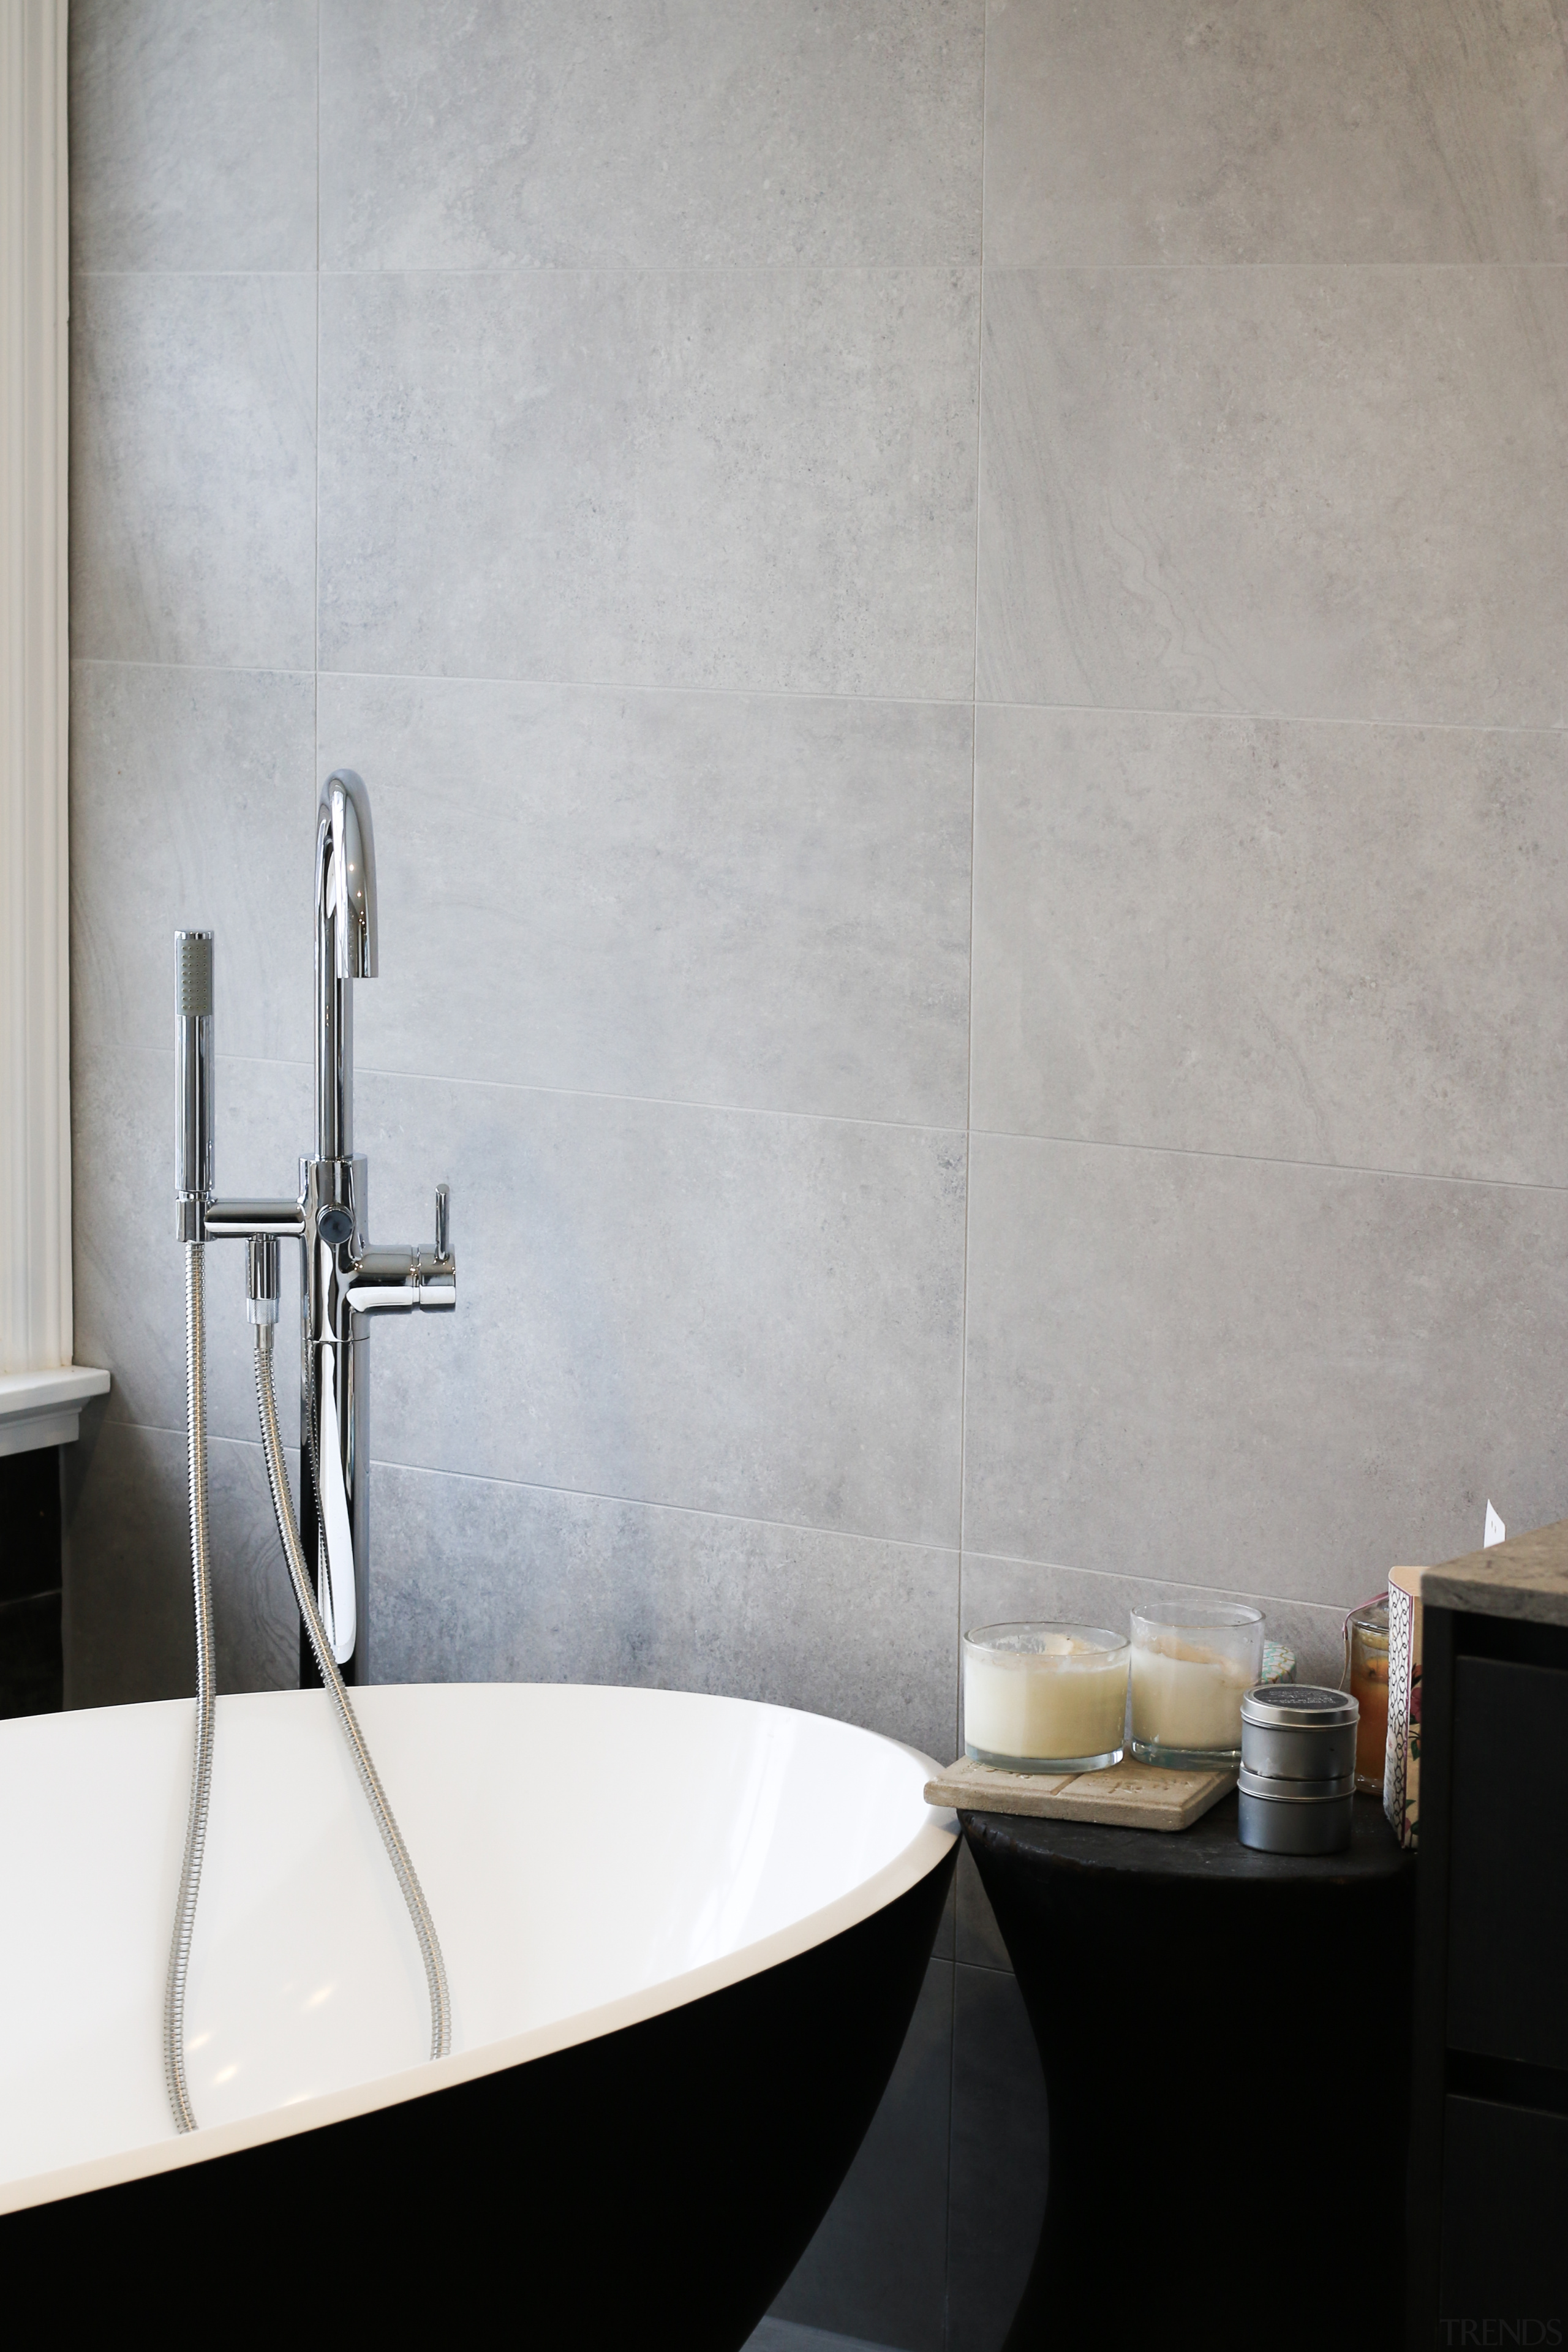 Black, white and grey – this master ensuite architecture, bathroom, bathroom accessory, bathroom sink, ceramic, floor, flooring, interior design, material property, plumbing fixture, property, room, sink, tap, tile, wall, gray